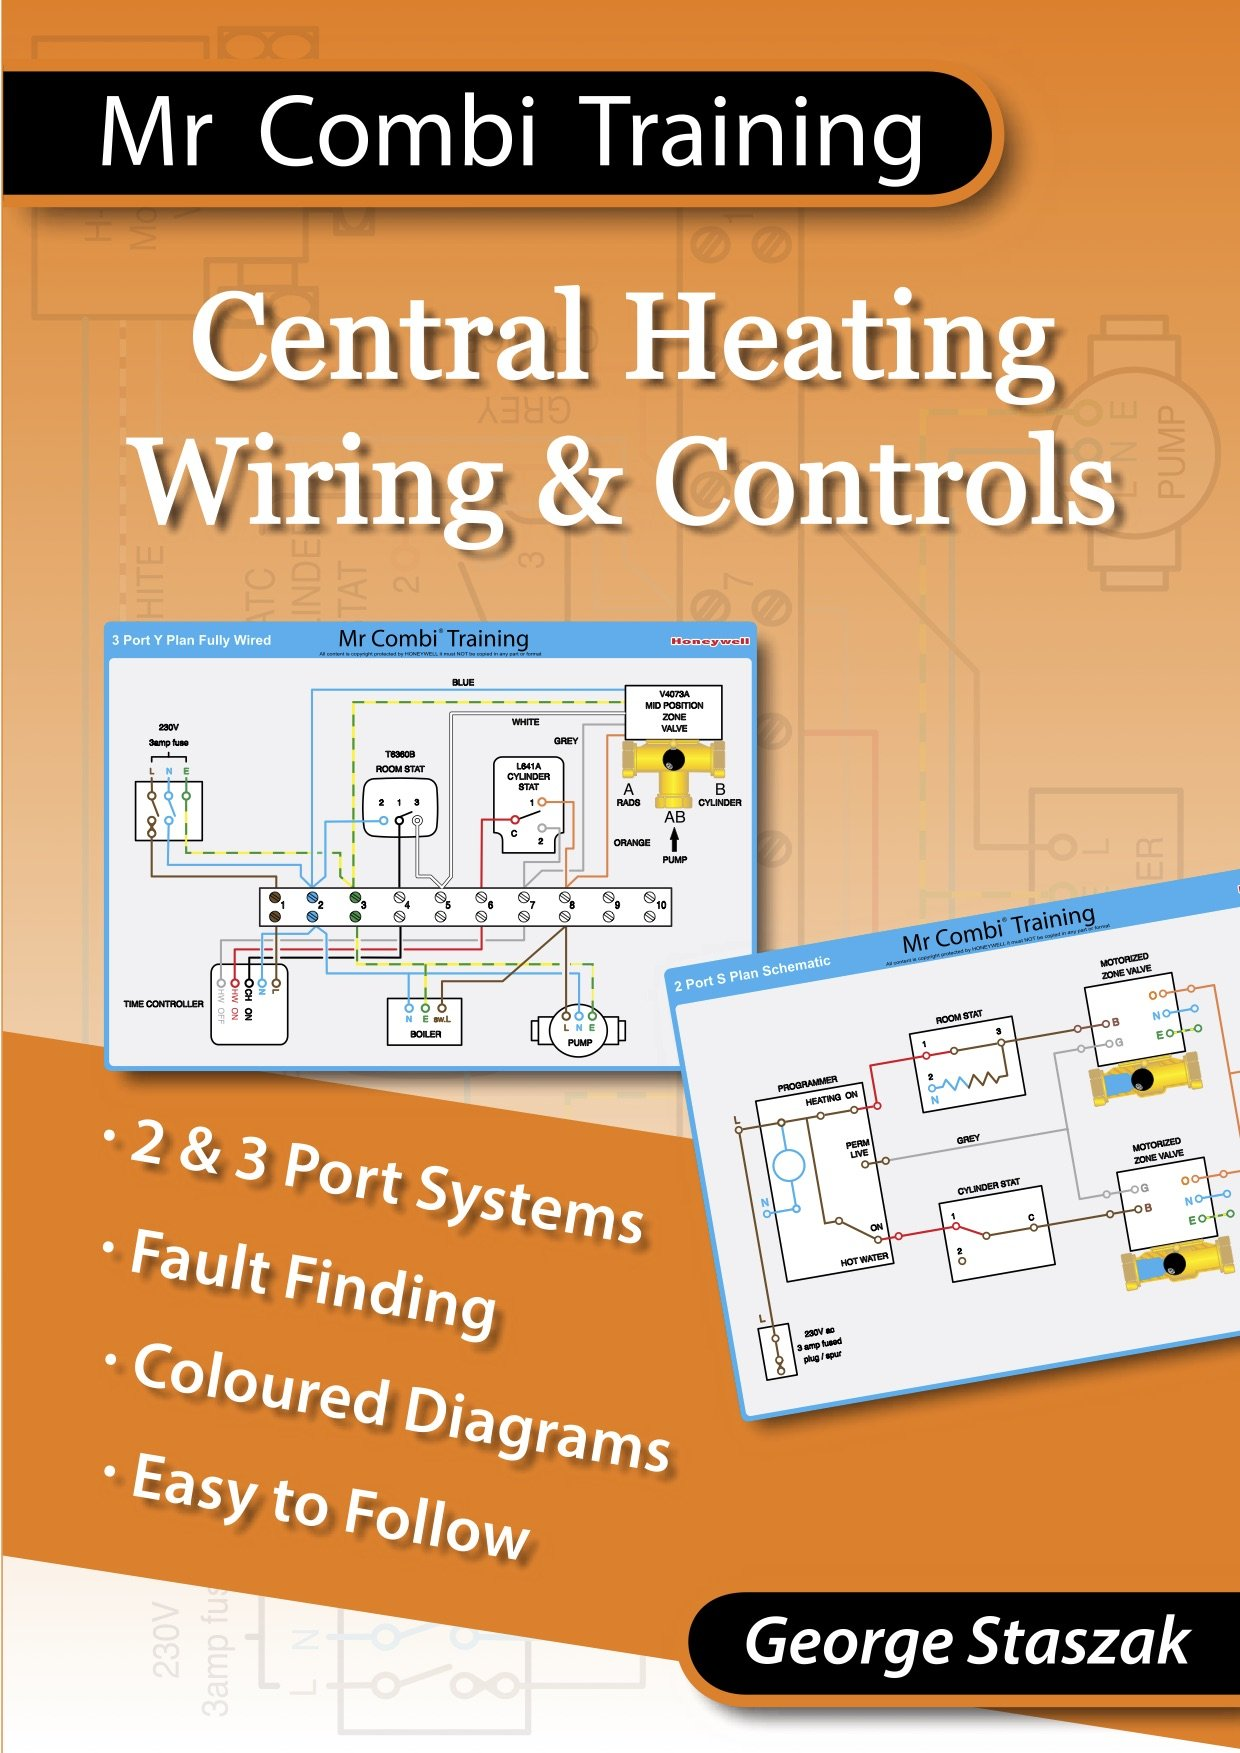 Central Heating Wiring Controls George Staszak Data Voice Diagram Home Free Download 9780993227004 Books